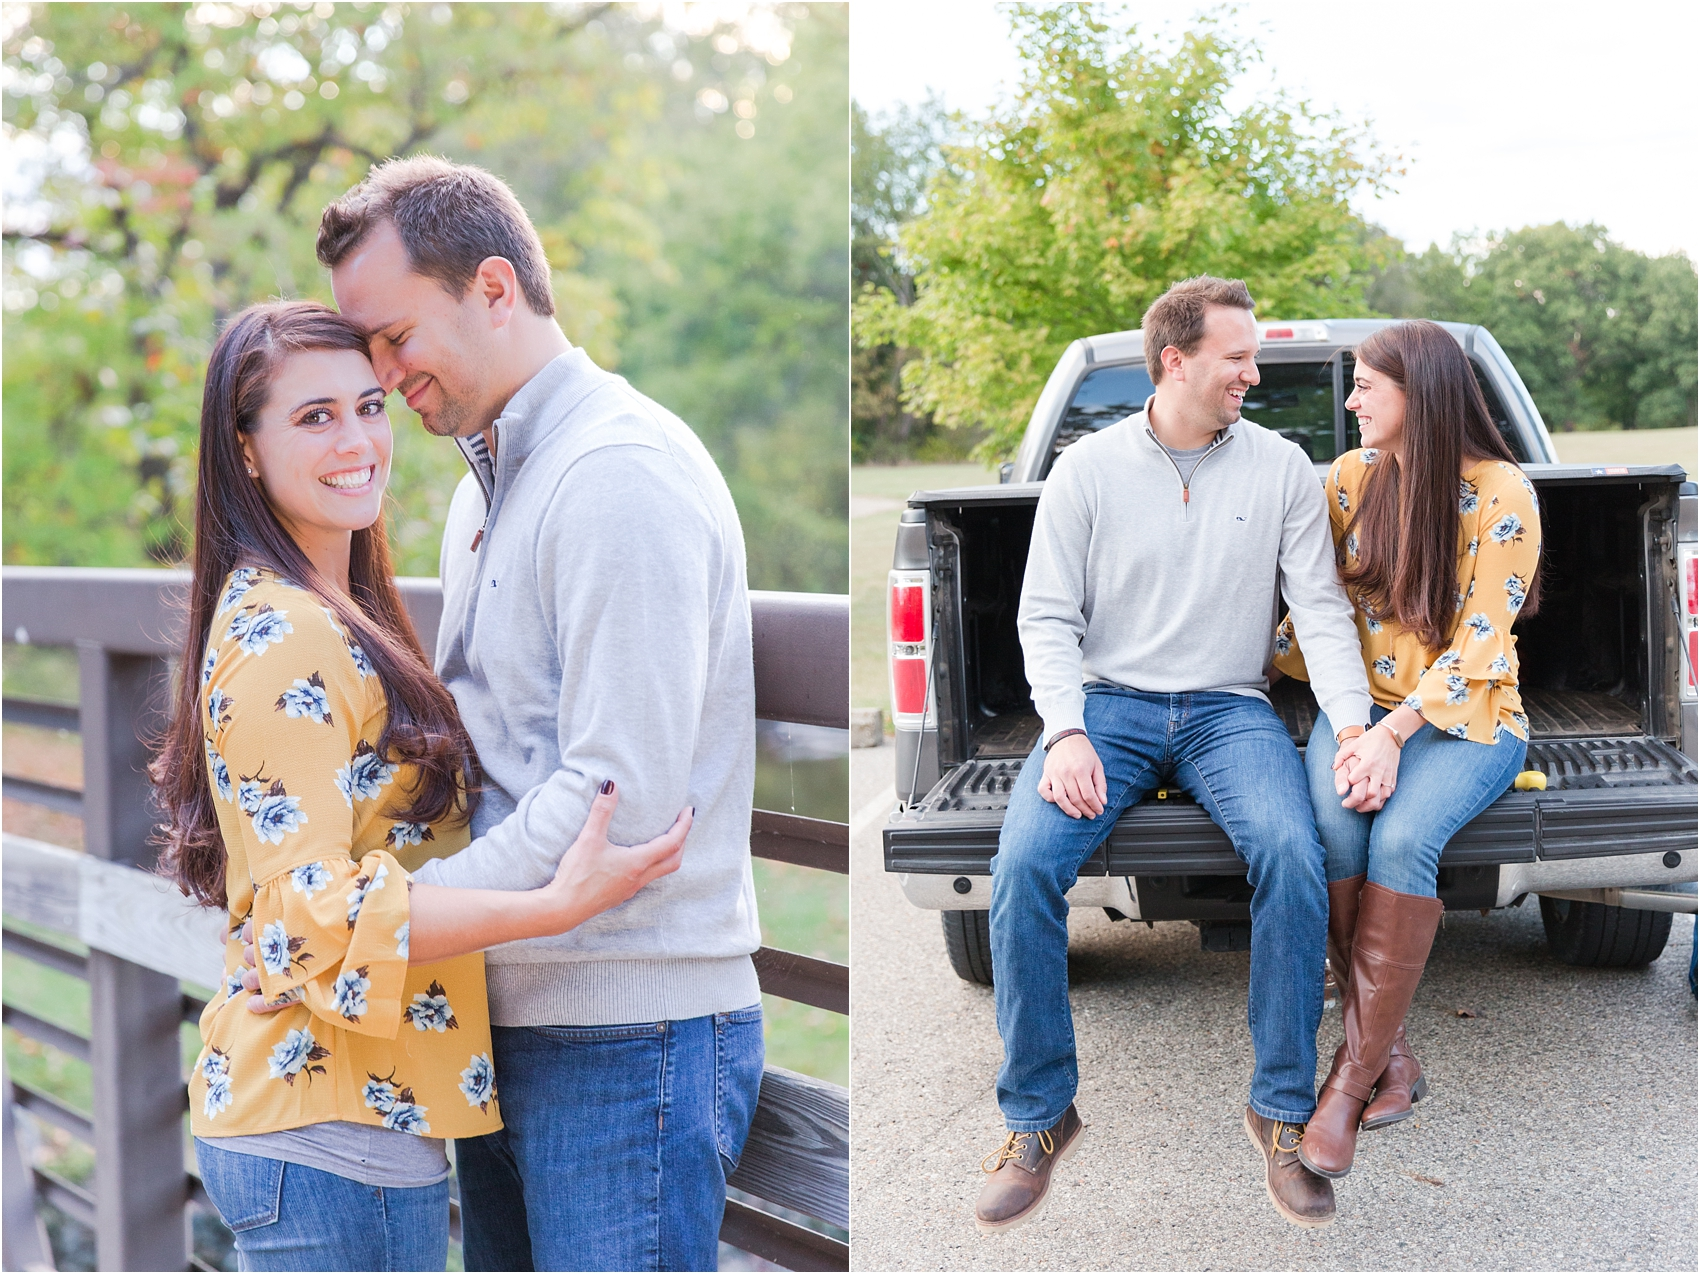 relaxed-autumn-engagement-photos-at-hudson-mills-metropark-in-dexter-mi-by-courtney-carolyn-photography_0041.jpg